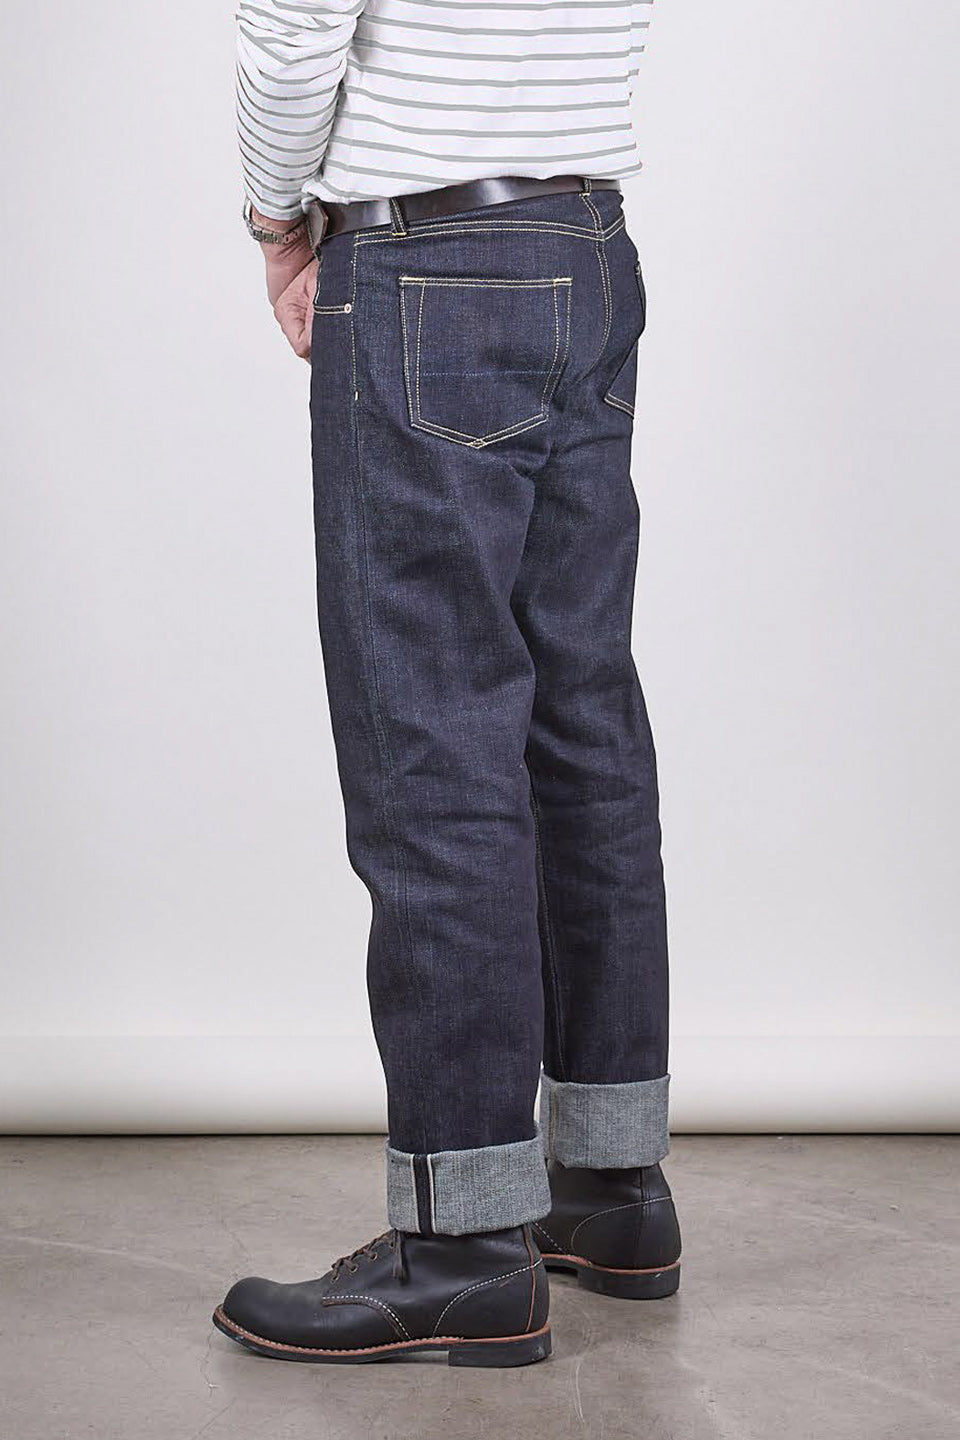 NW1 Relaxed Straight Indigo 14oz Japanese Raw Selvedge Mens